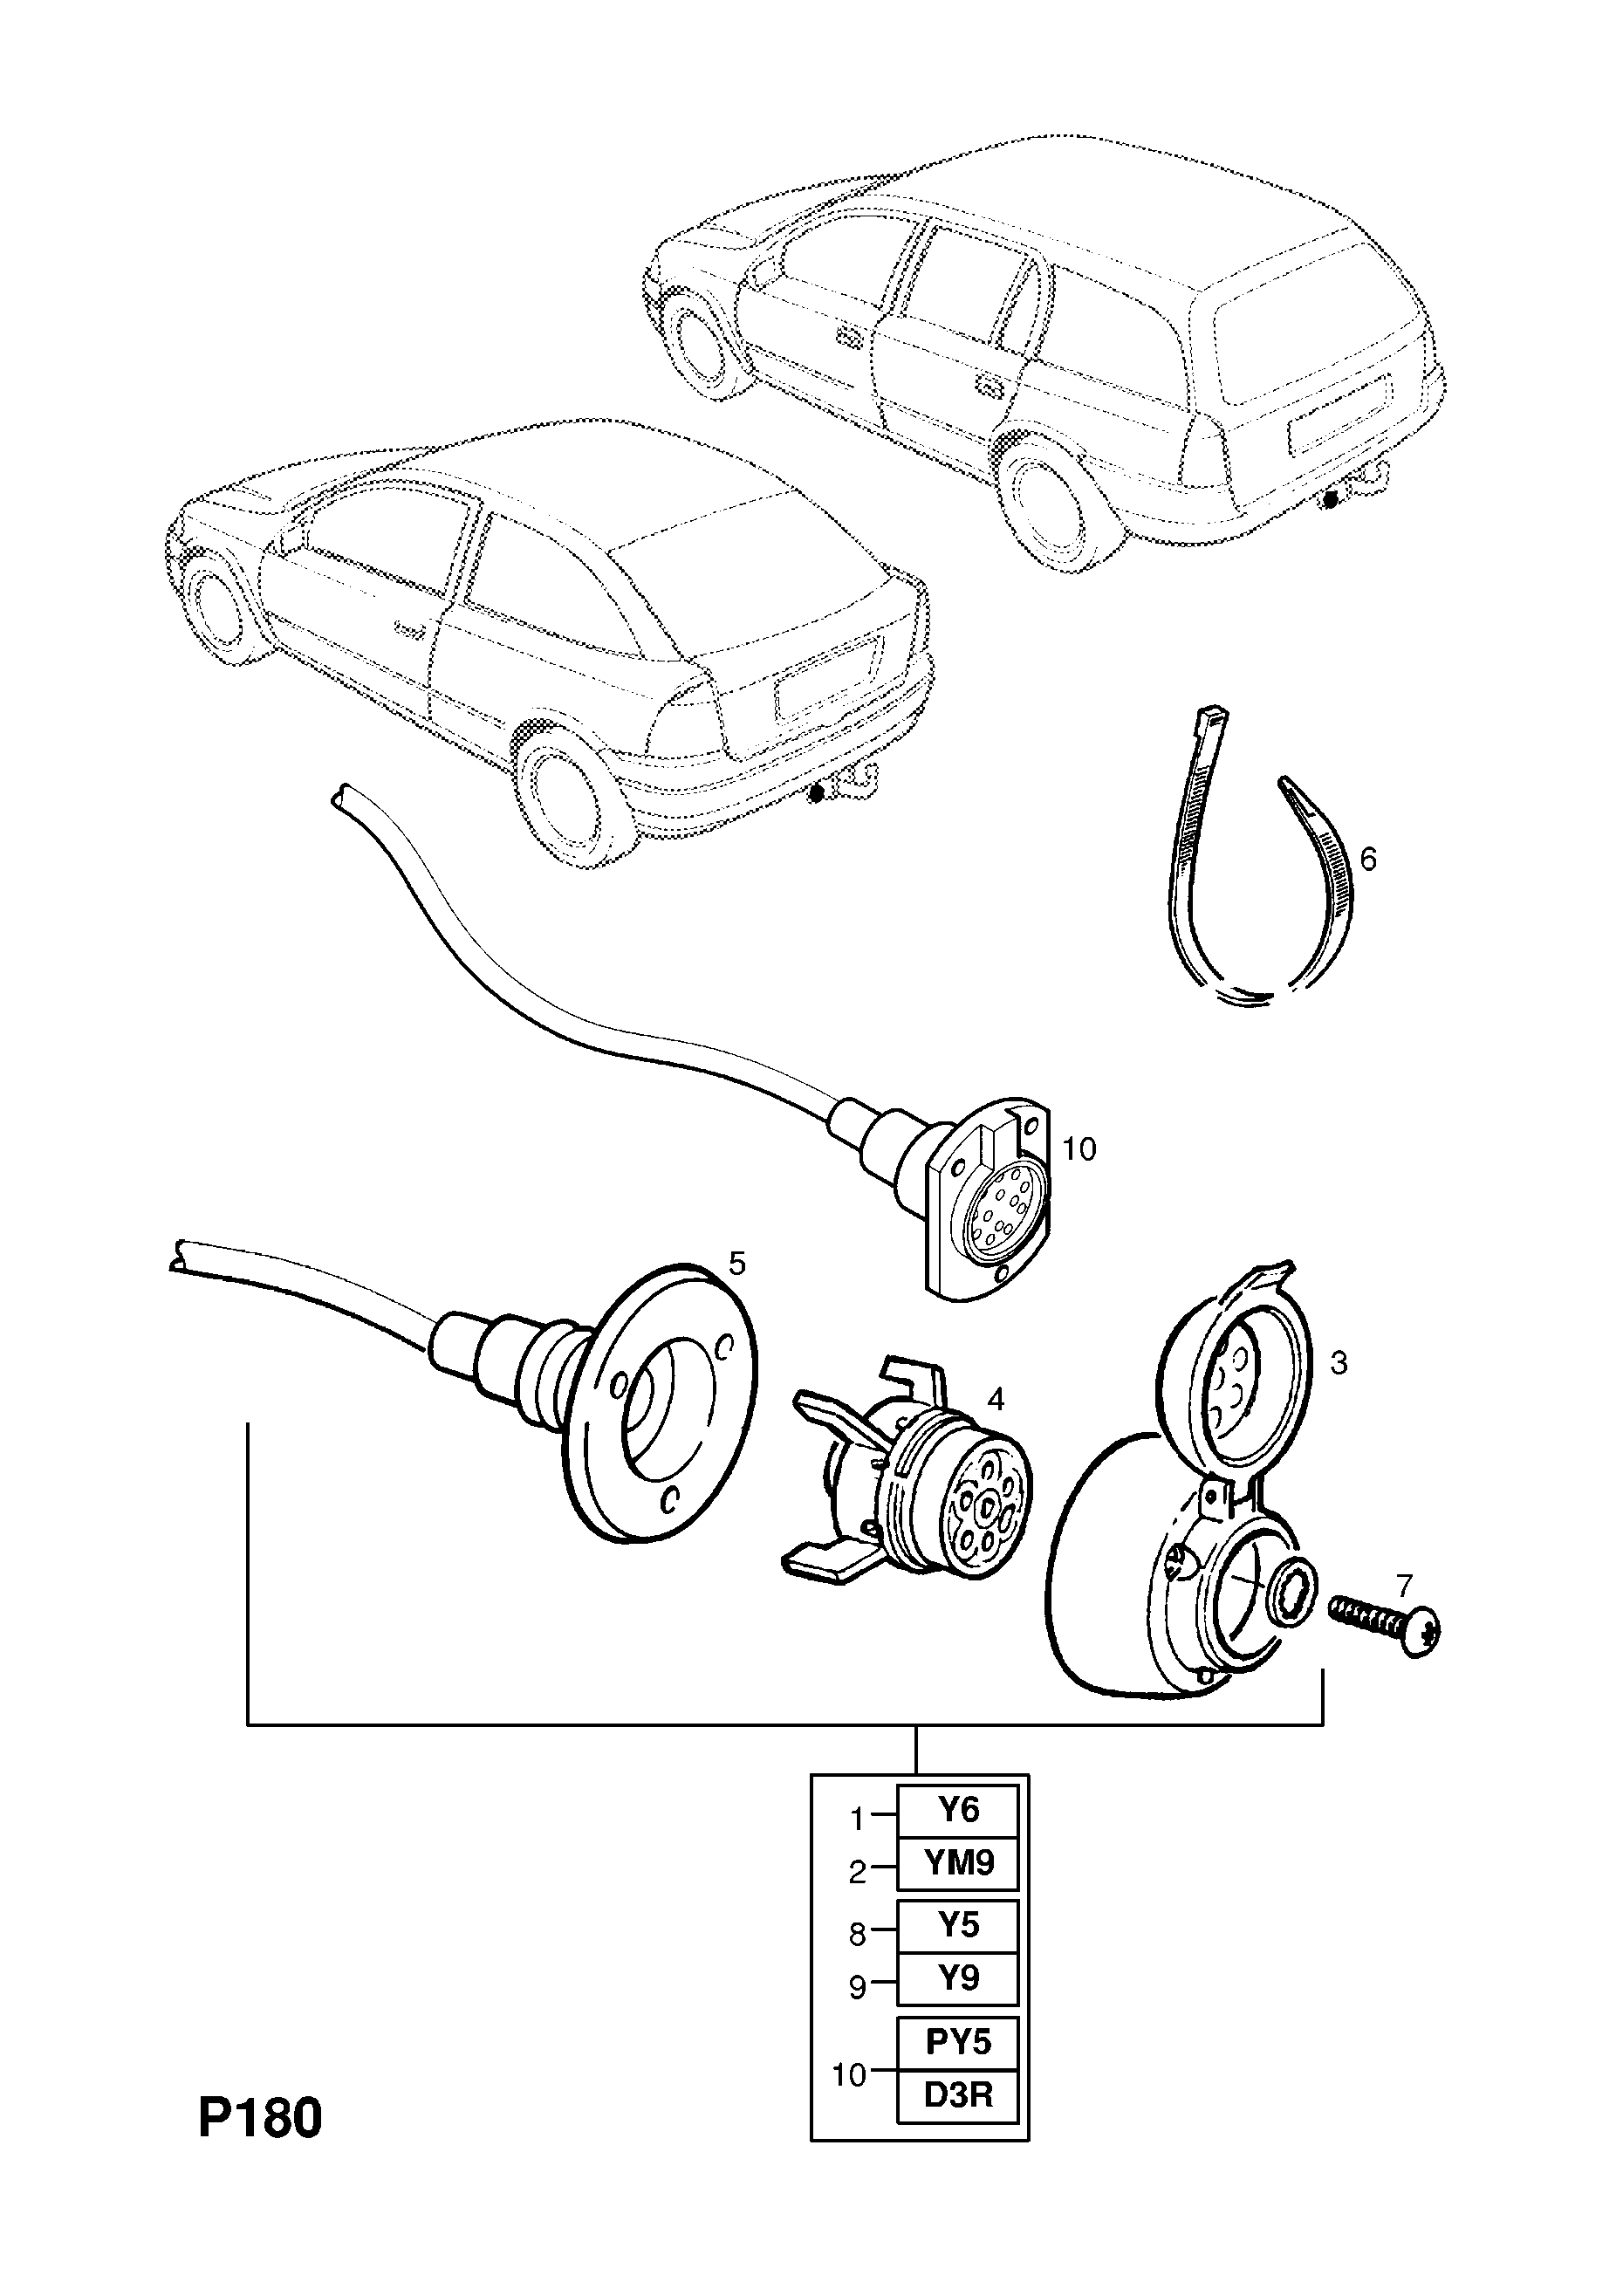 opel astra g 1998 2010 p electrical 14 body 148 estate van Simple 12V Horn Wiring Diagram list of parts